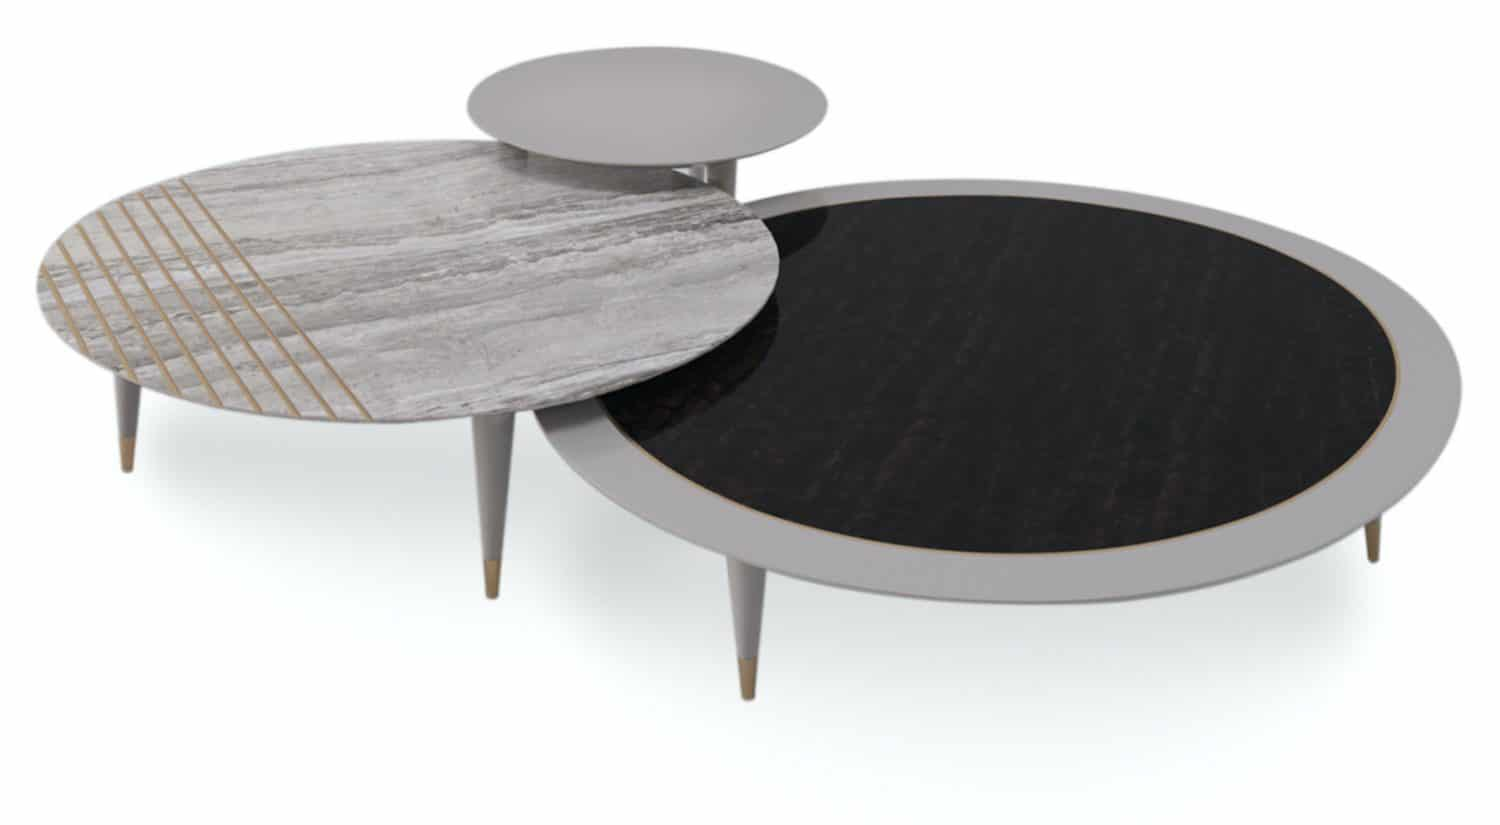 Picture of: Coffee Table Coffee Tables Nz Designer Coffee Tables Round Coffee Tables